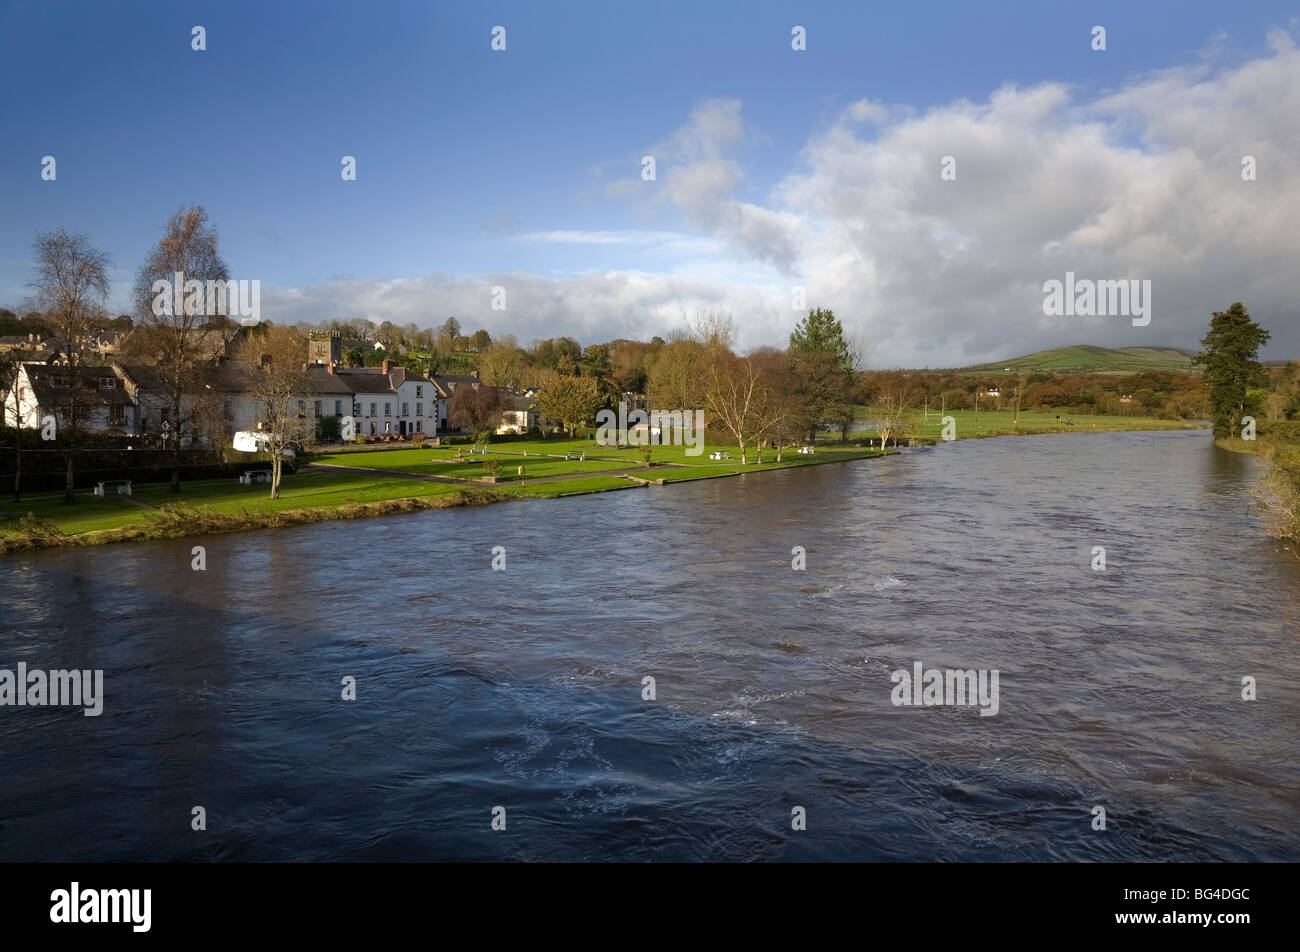 The River Nore in Flood, Inistioge, County Kilkenny, Ireland - Stock Image